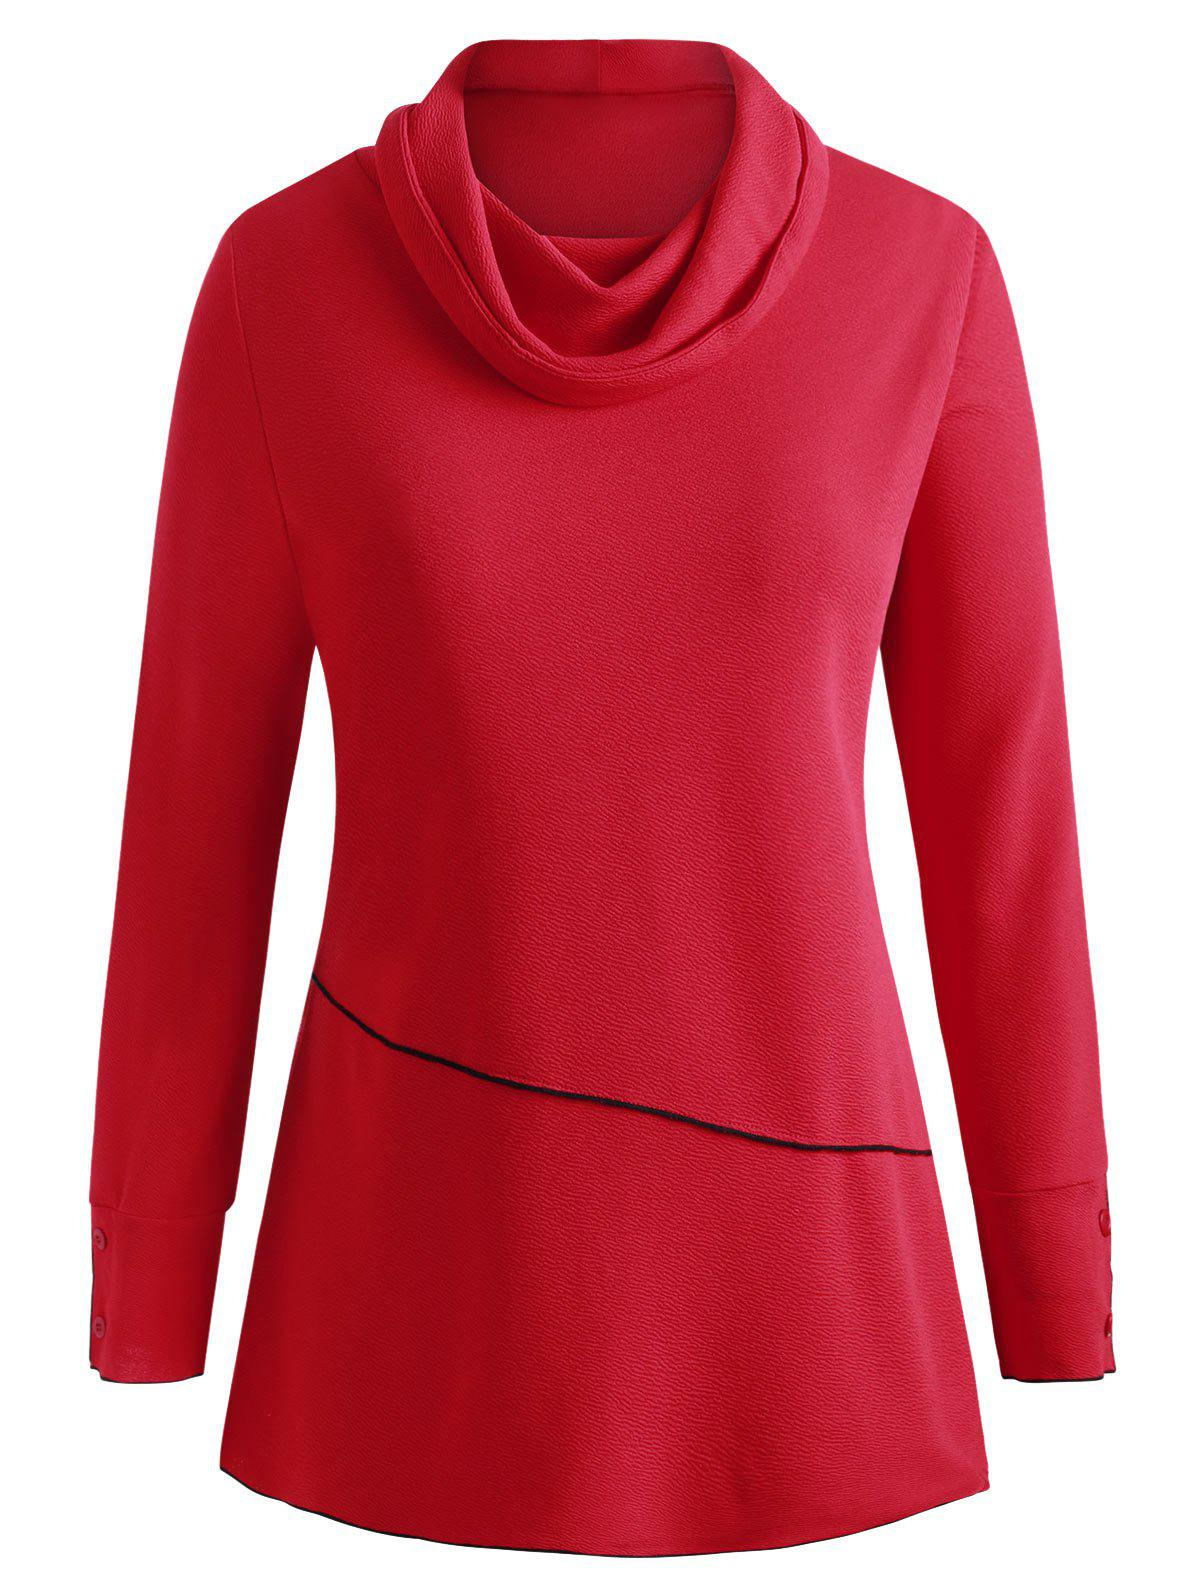 Cowl Necl Piping texturé Taille Plus Sweat - Rouge 2X